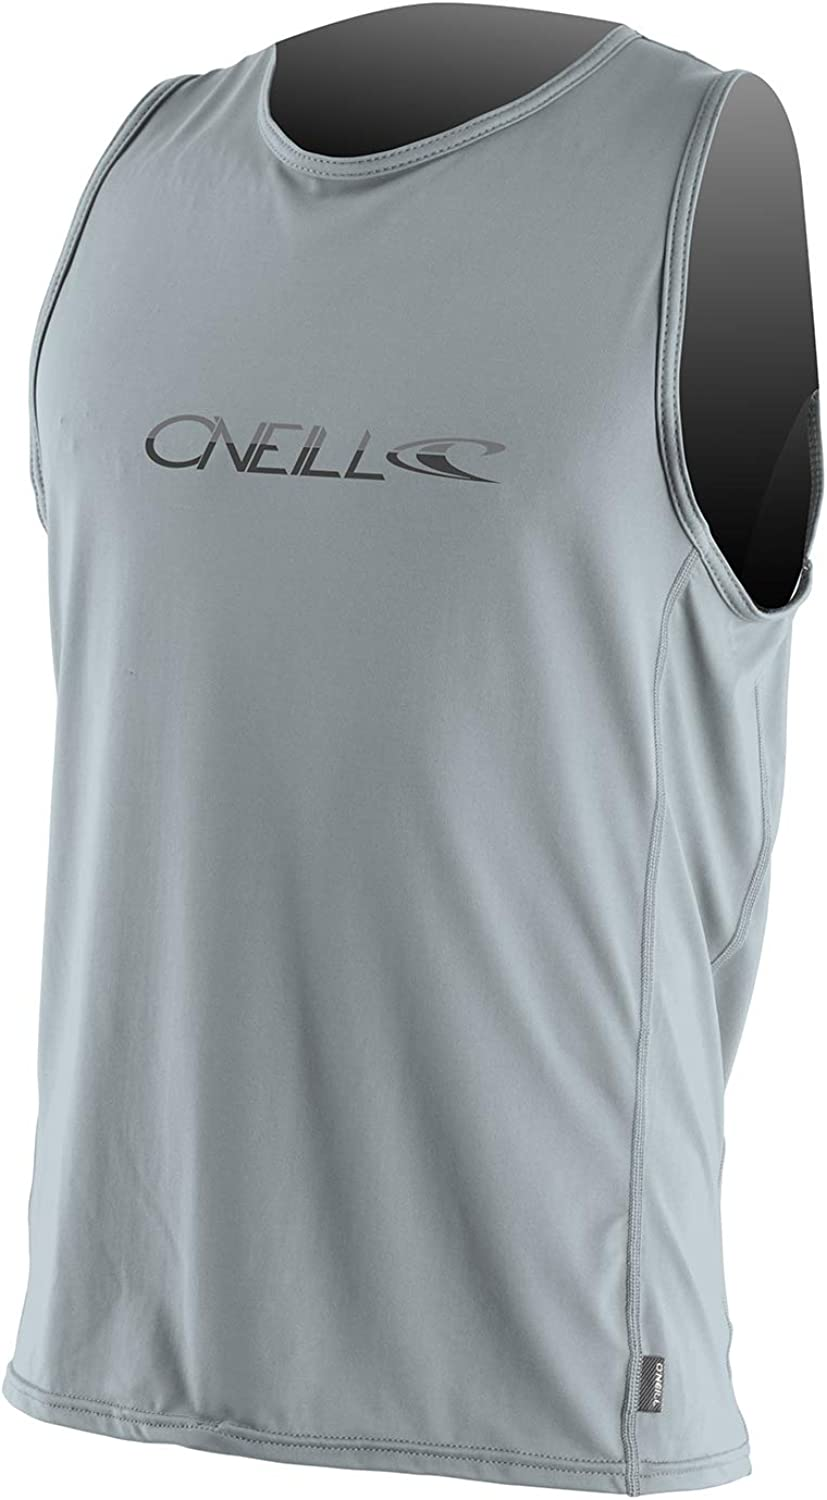 O'Neill men's 24/7 sleeveless: Loose fit, breathable shirt, 30+ SPF